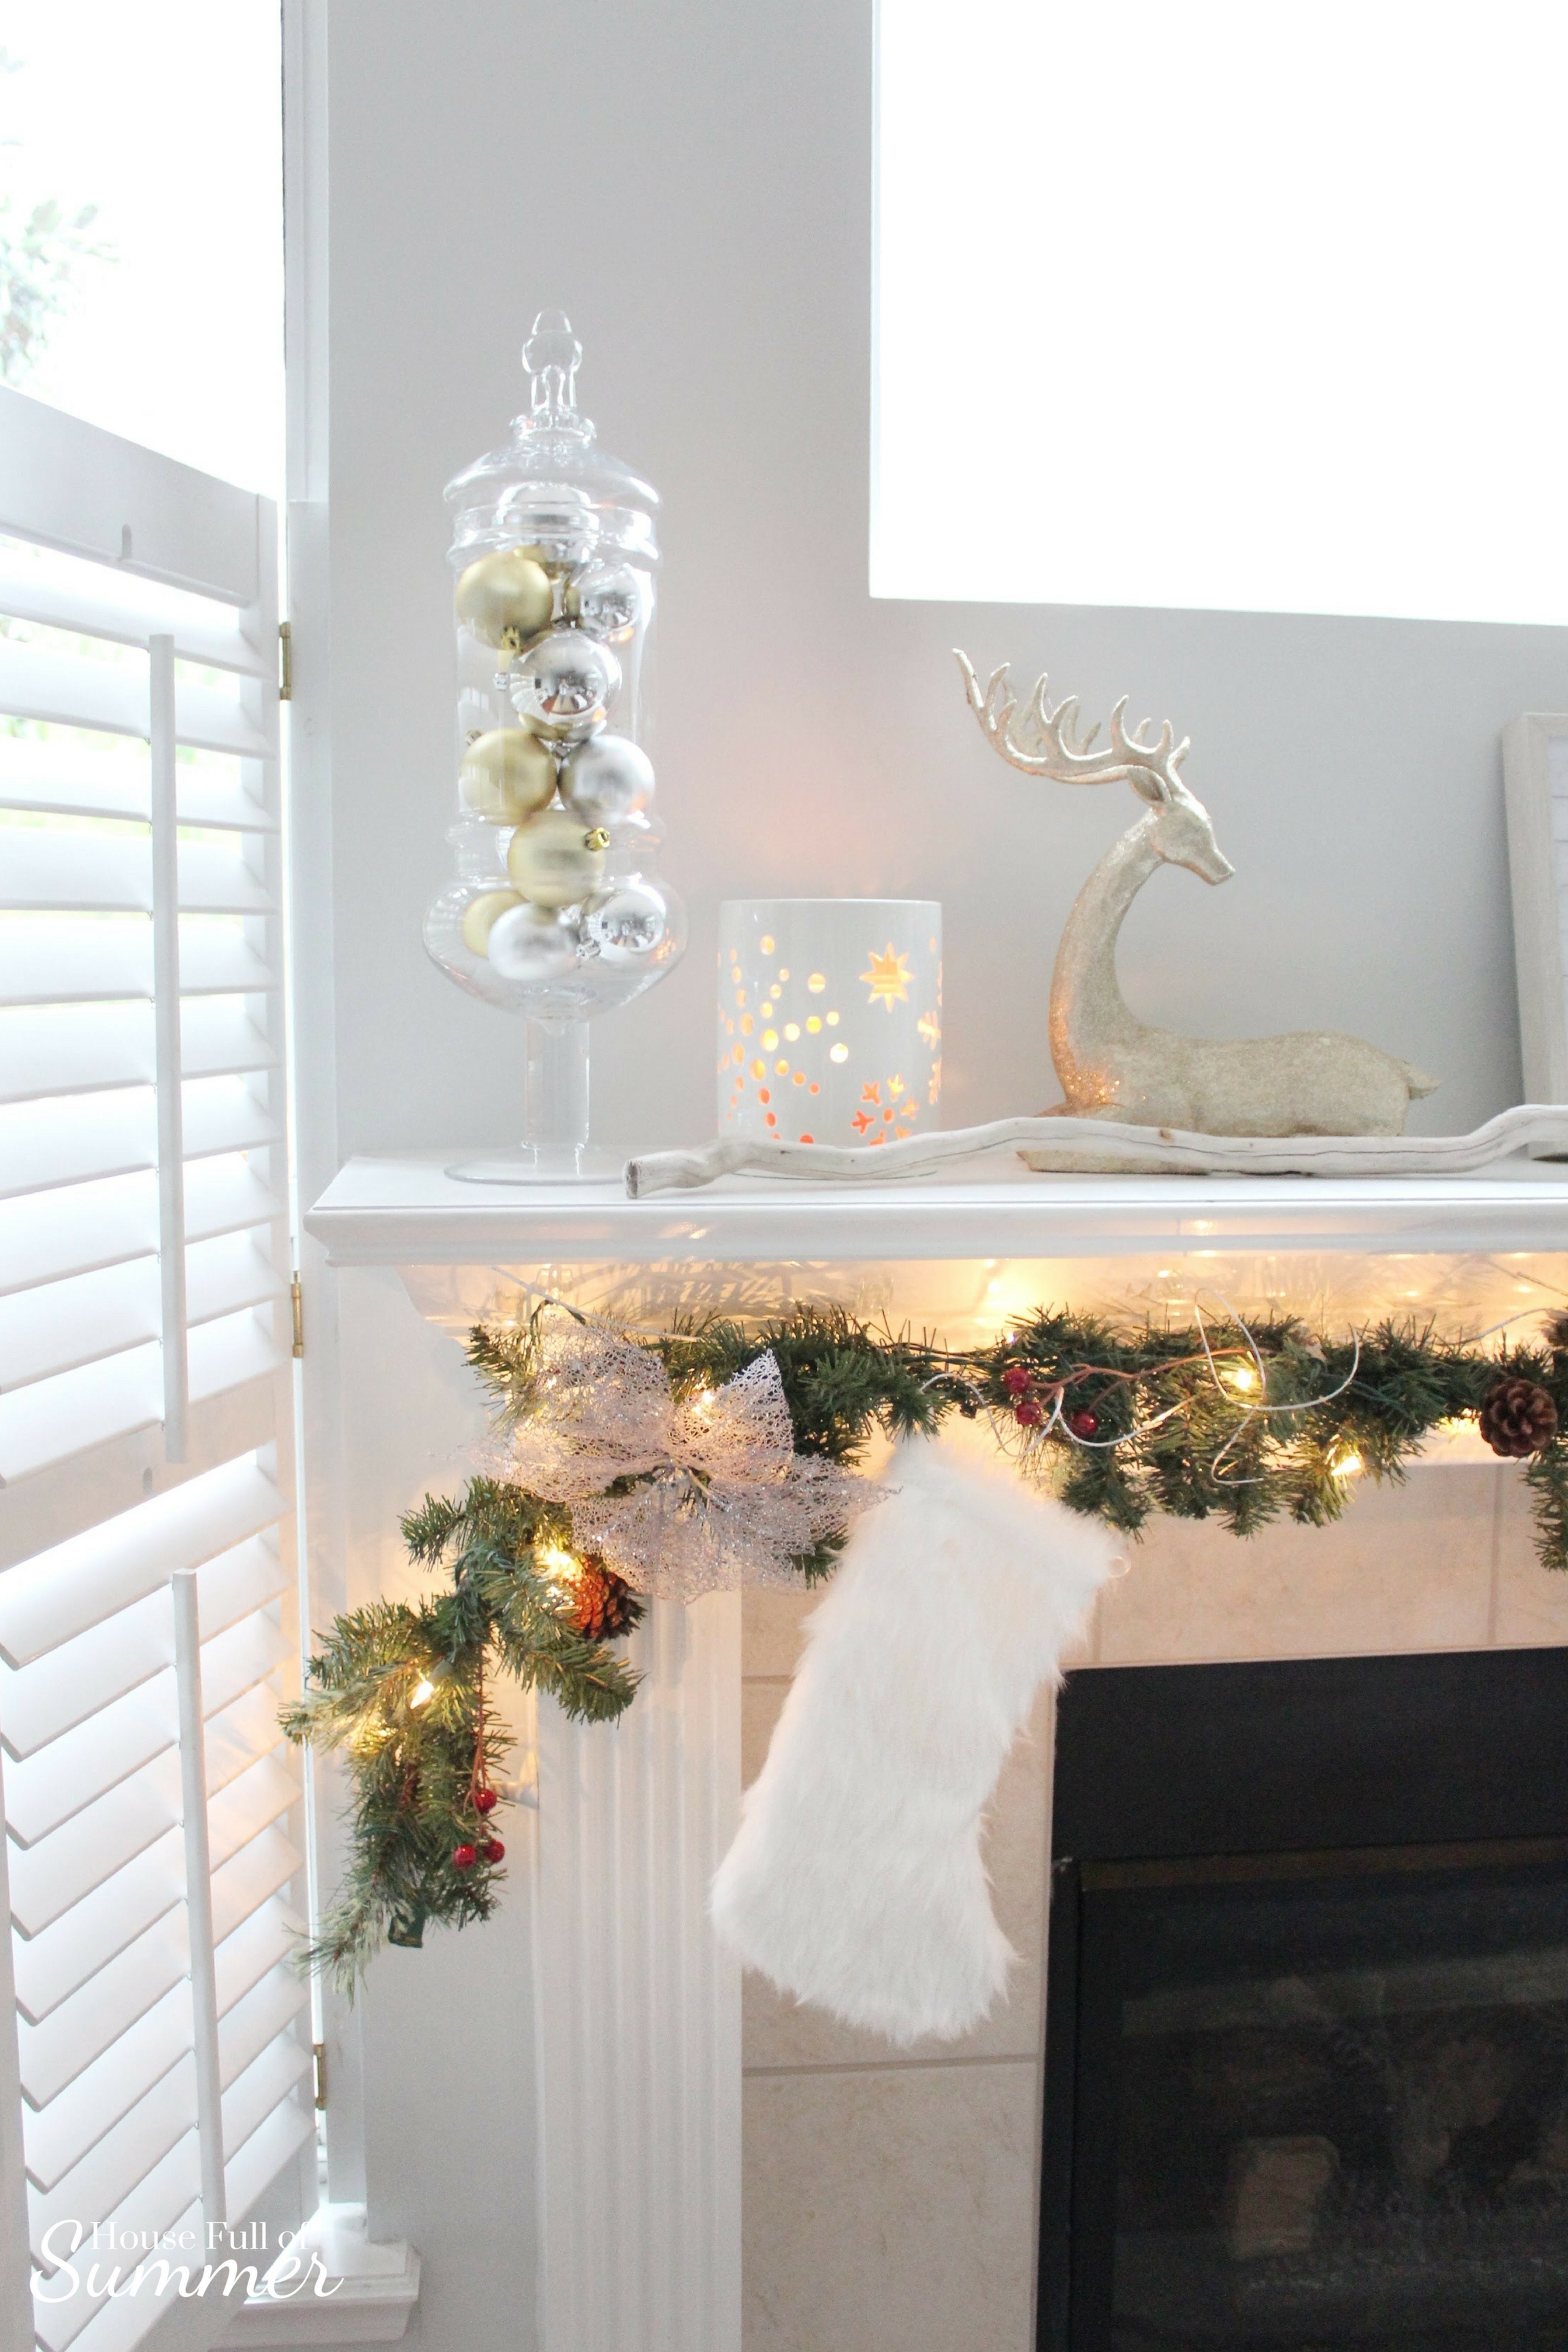 Creating a Glam Coastal Christmas with Bealls Florida | House Full of Summer blog - neutral christmas decor, gold coastal christmas throw pillow, tassel pillow, decorative pillow, florida christmas, beachy holiday decor, mantel decor, fur stockings, fireplace garland, silver and gold ornaments,